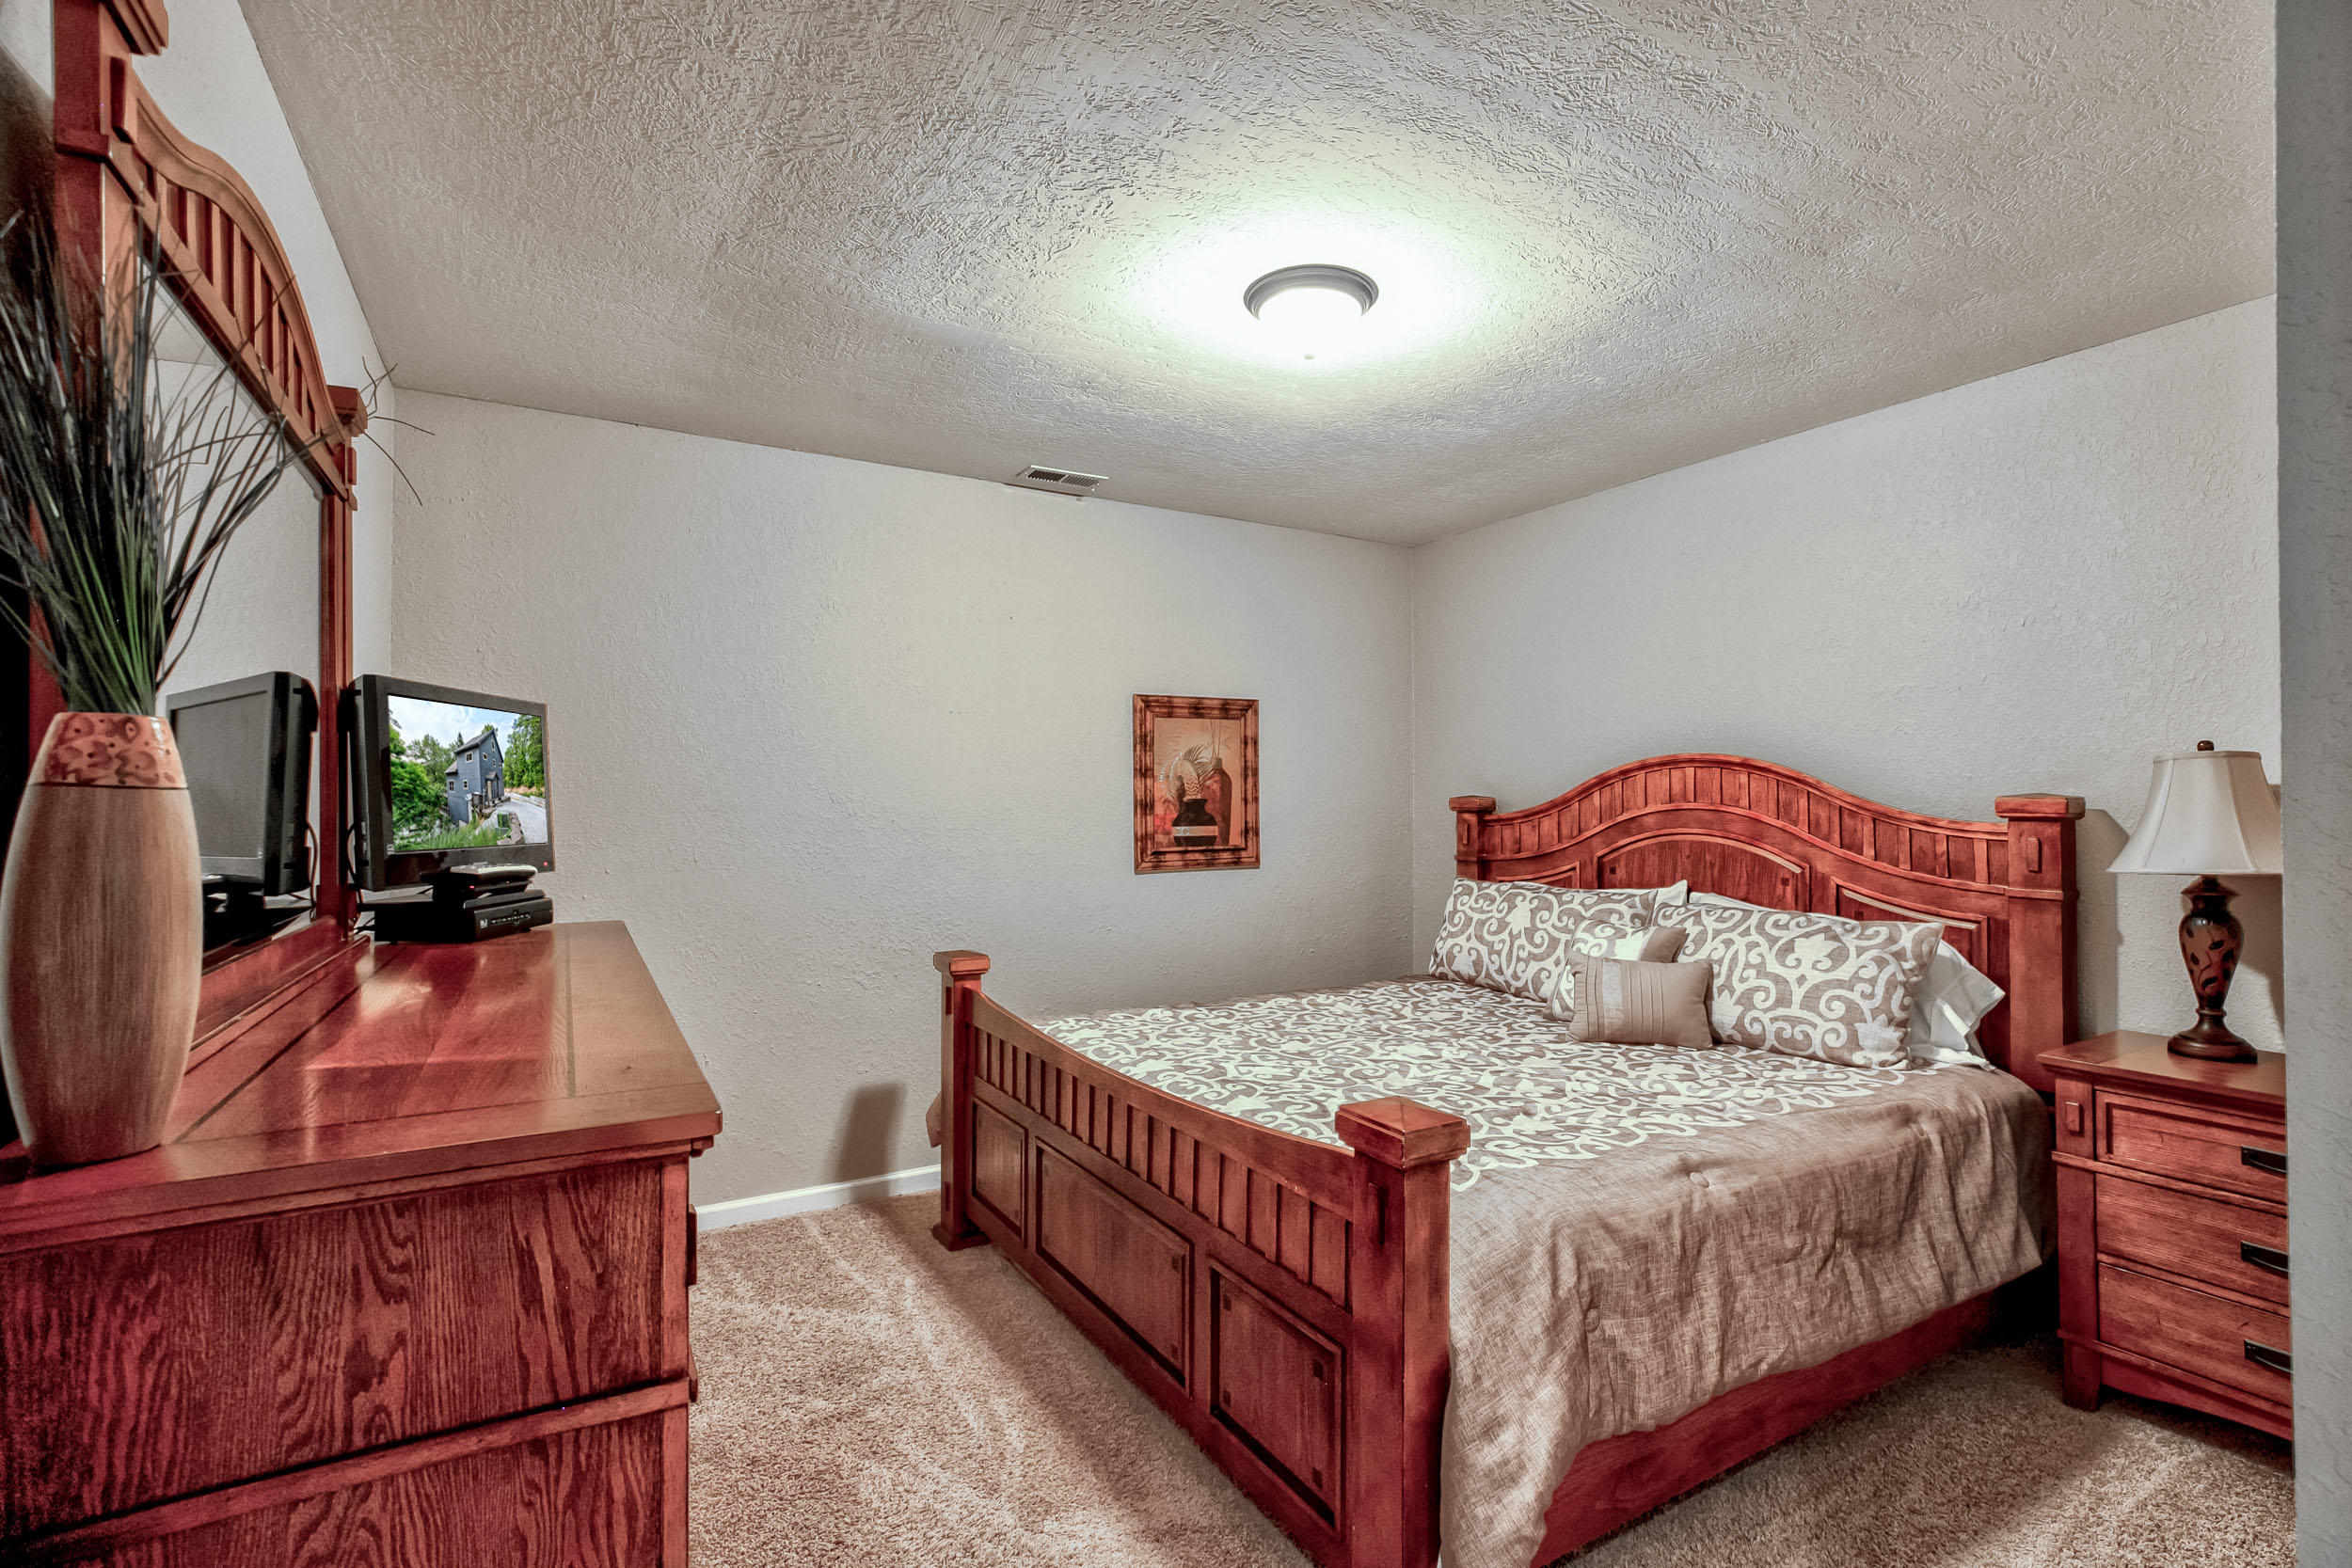 112 Waterfront Tr: